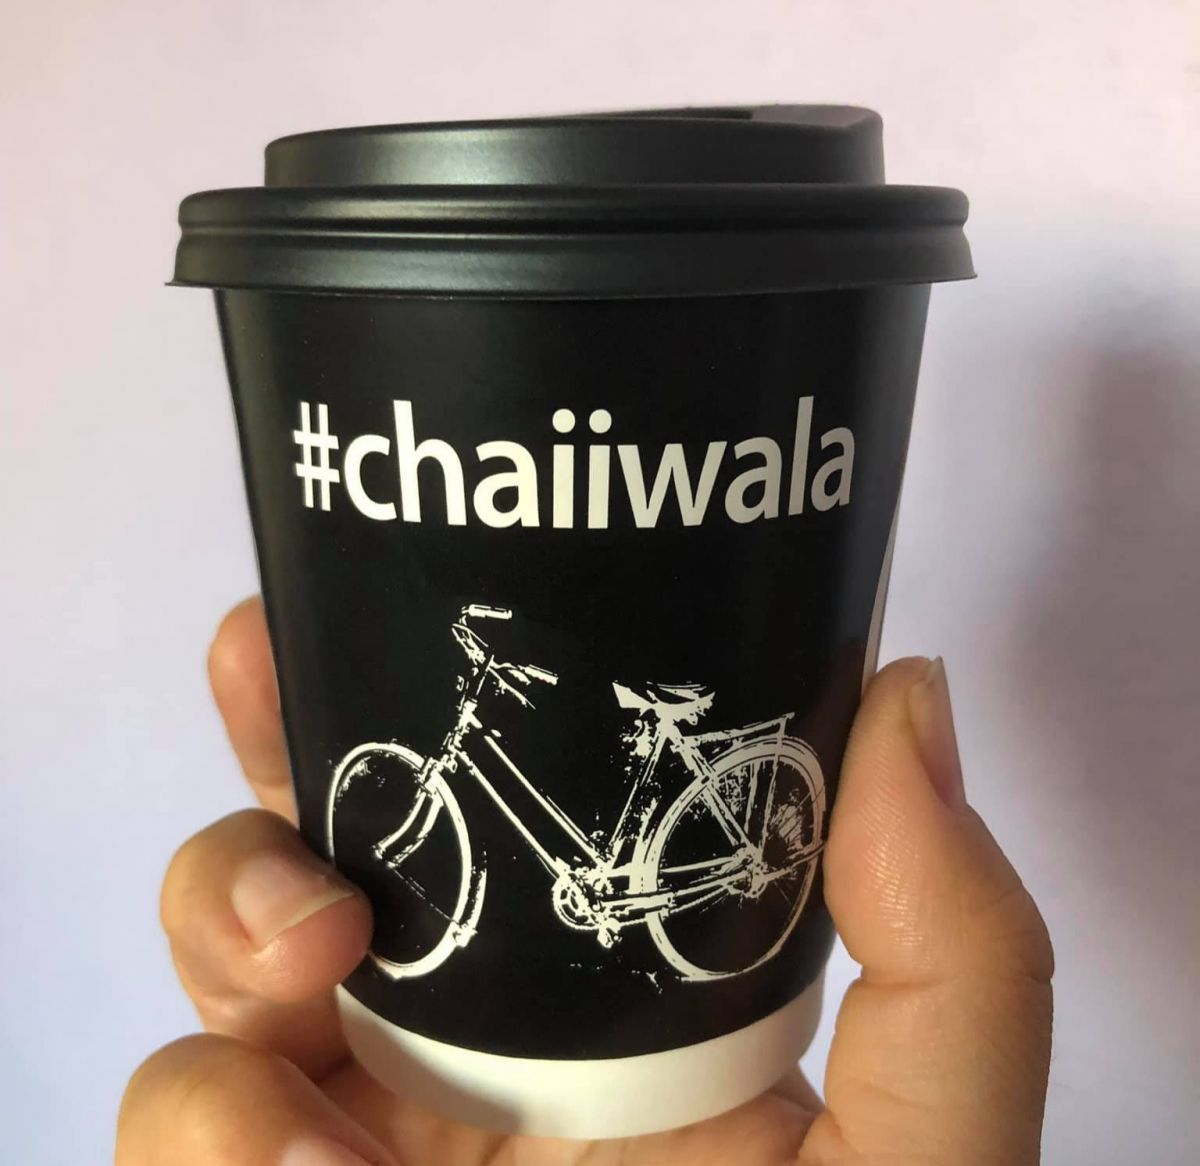 holding a cup of tea with chaiiwala logo